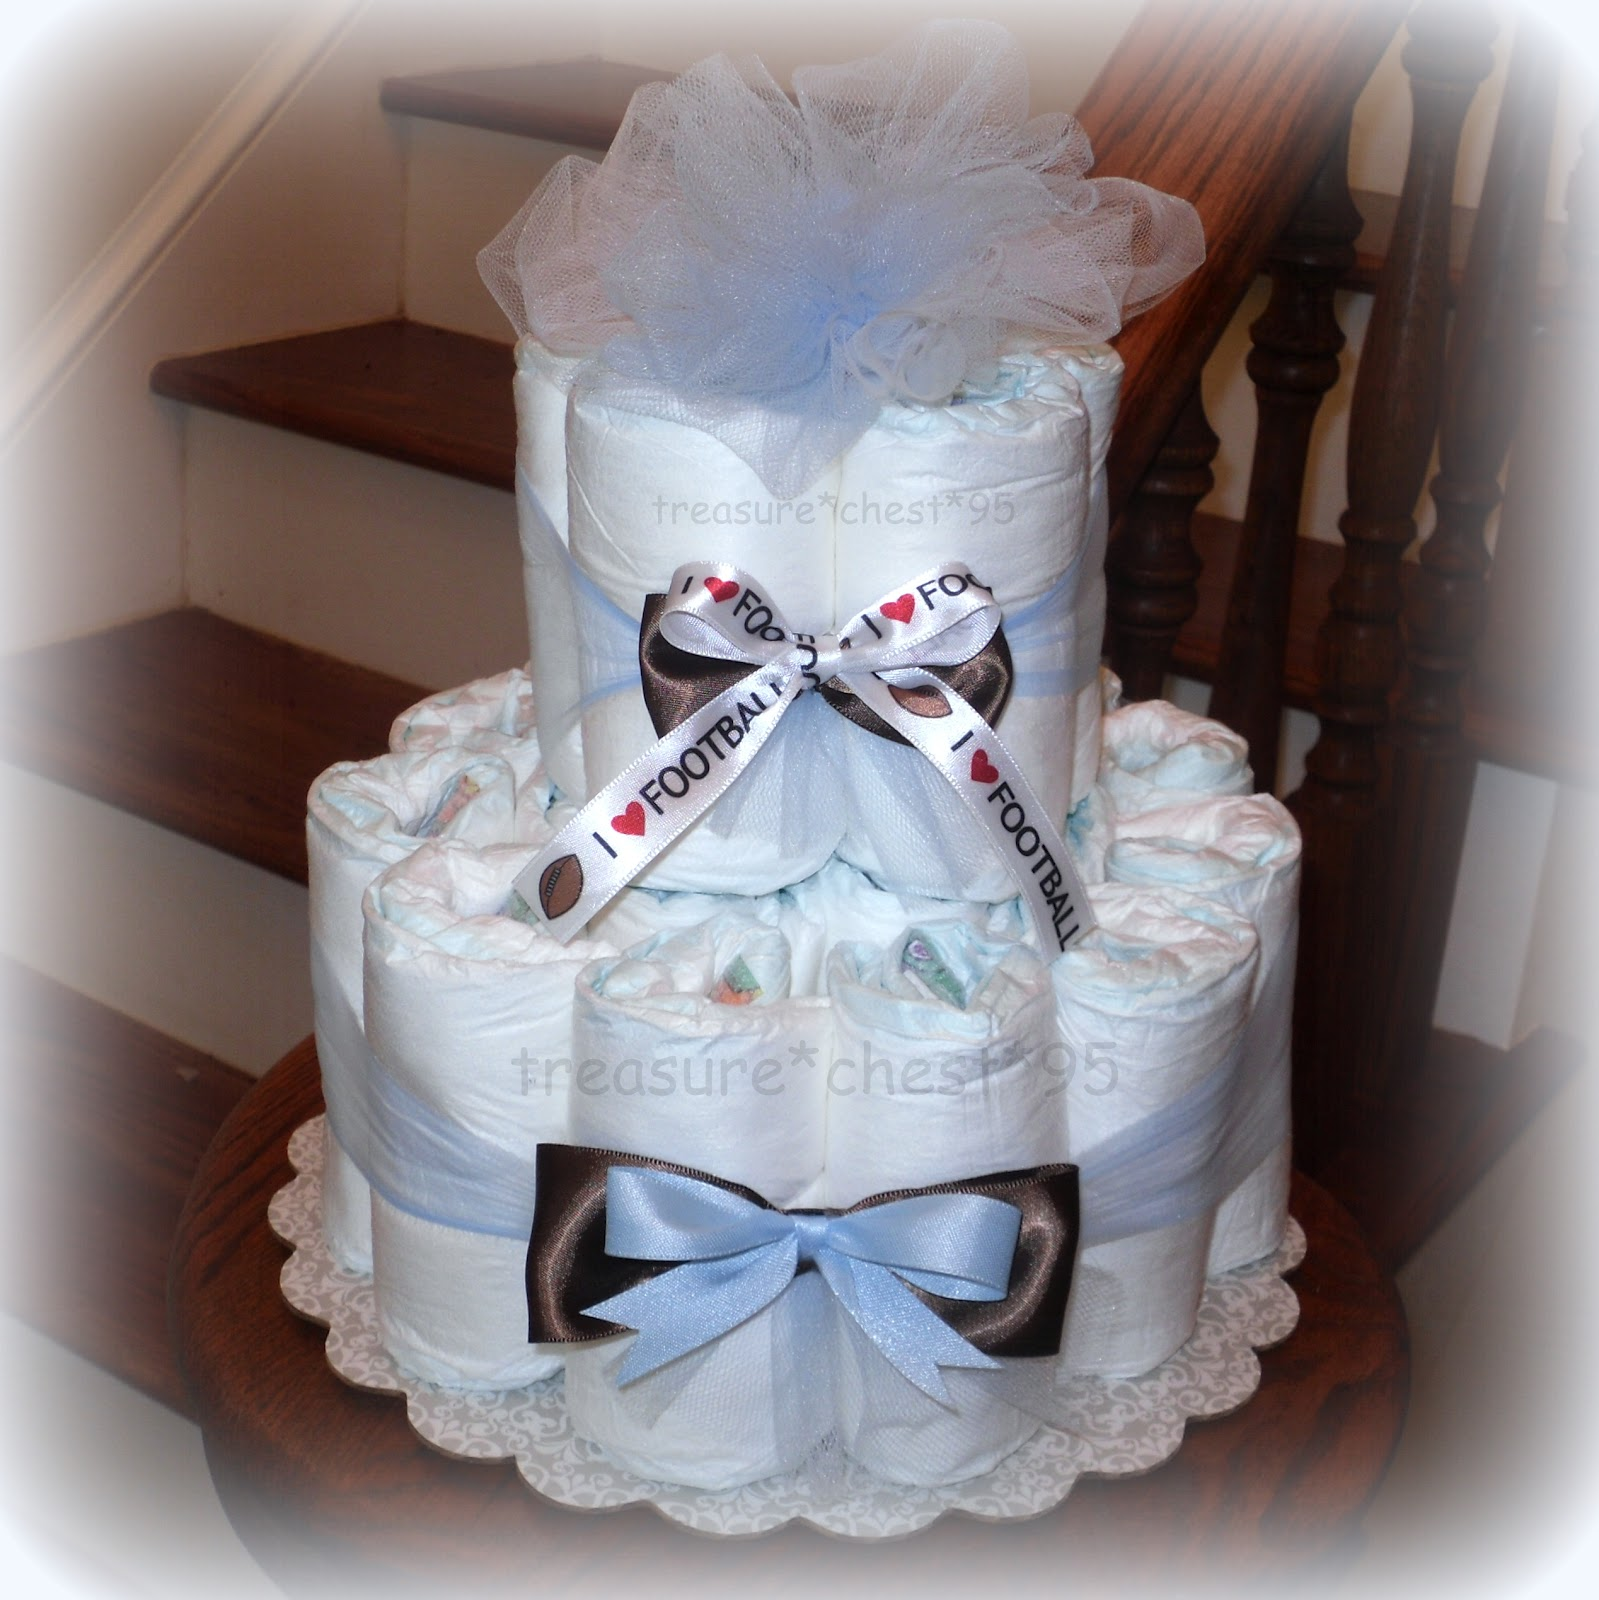 Diaper Cake Centerpiece For Baby Shower : FOOTBALL Diaper Cake Baby Shower Centerpiece Gift Boy Blue ...